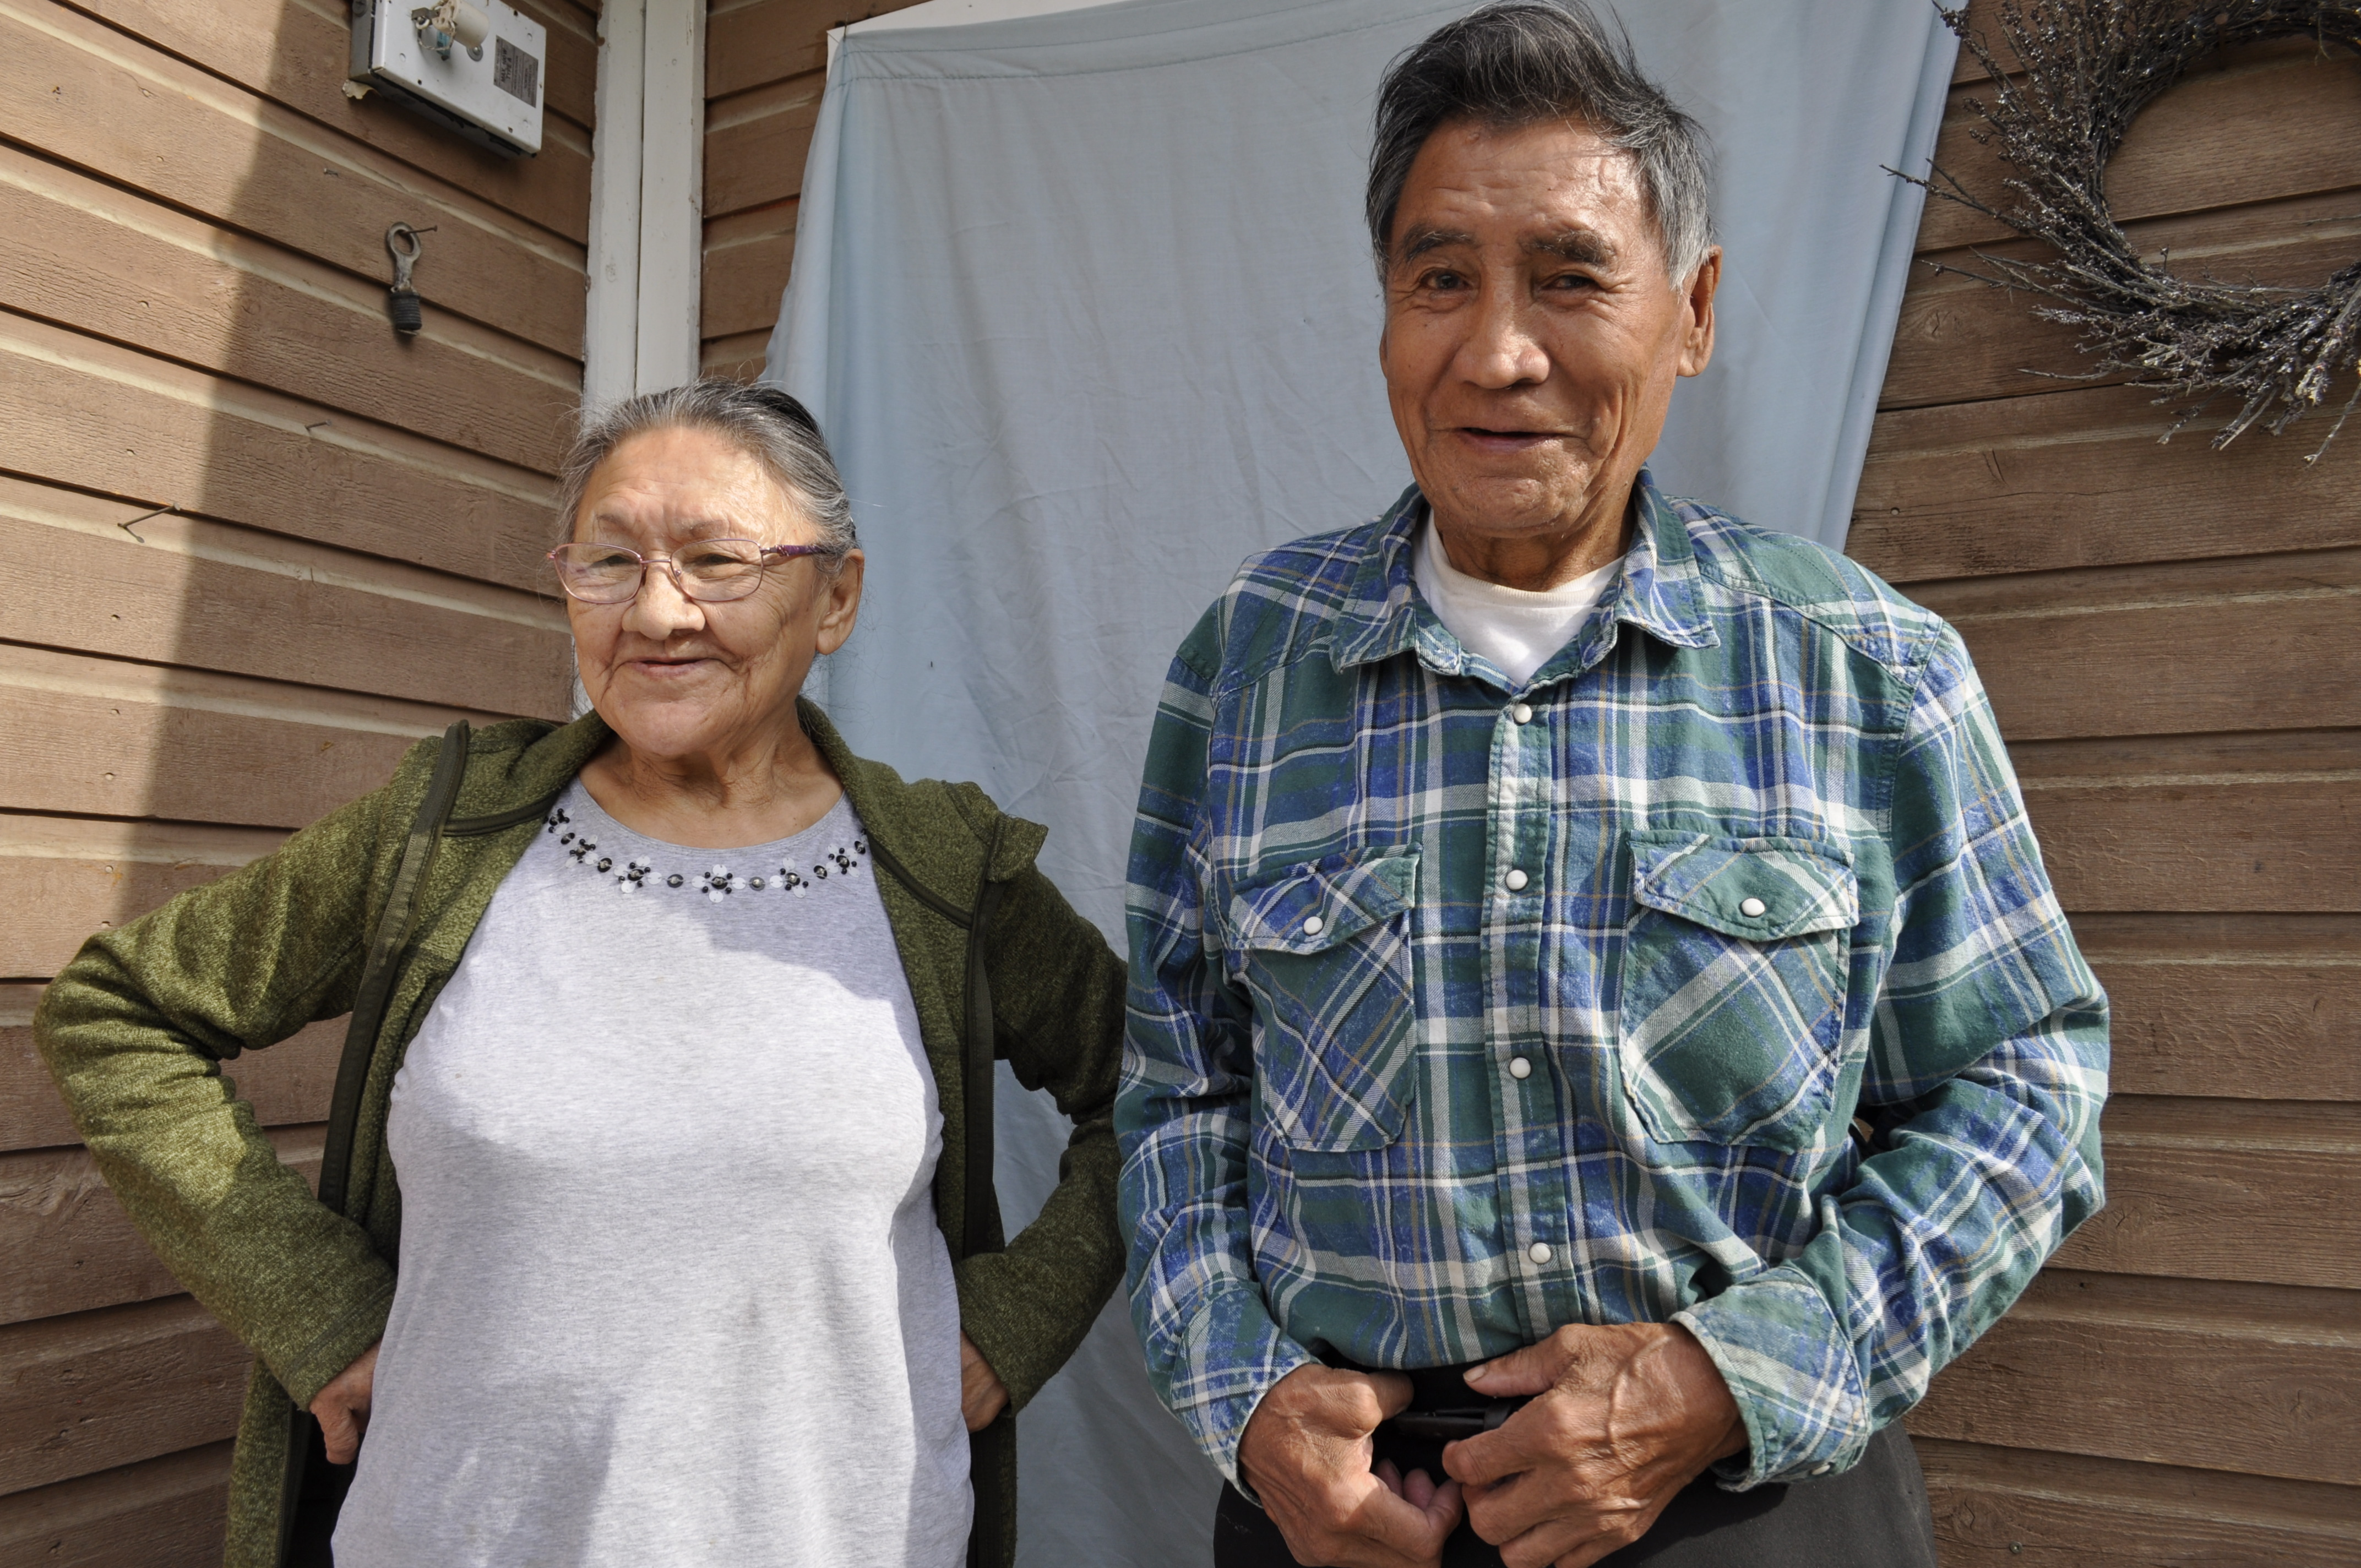 Margaret and Edward Kelly have lived in their home in Fort Good Hope, N.W.T., for 30 years. It's falling apart, and they blame the permafrost shifting beneath their feet. (Alex Brockman/CBC)